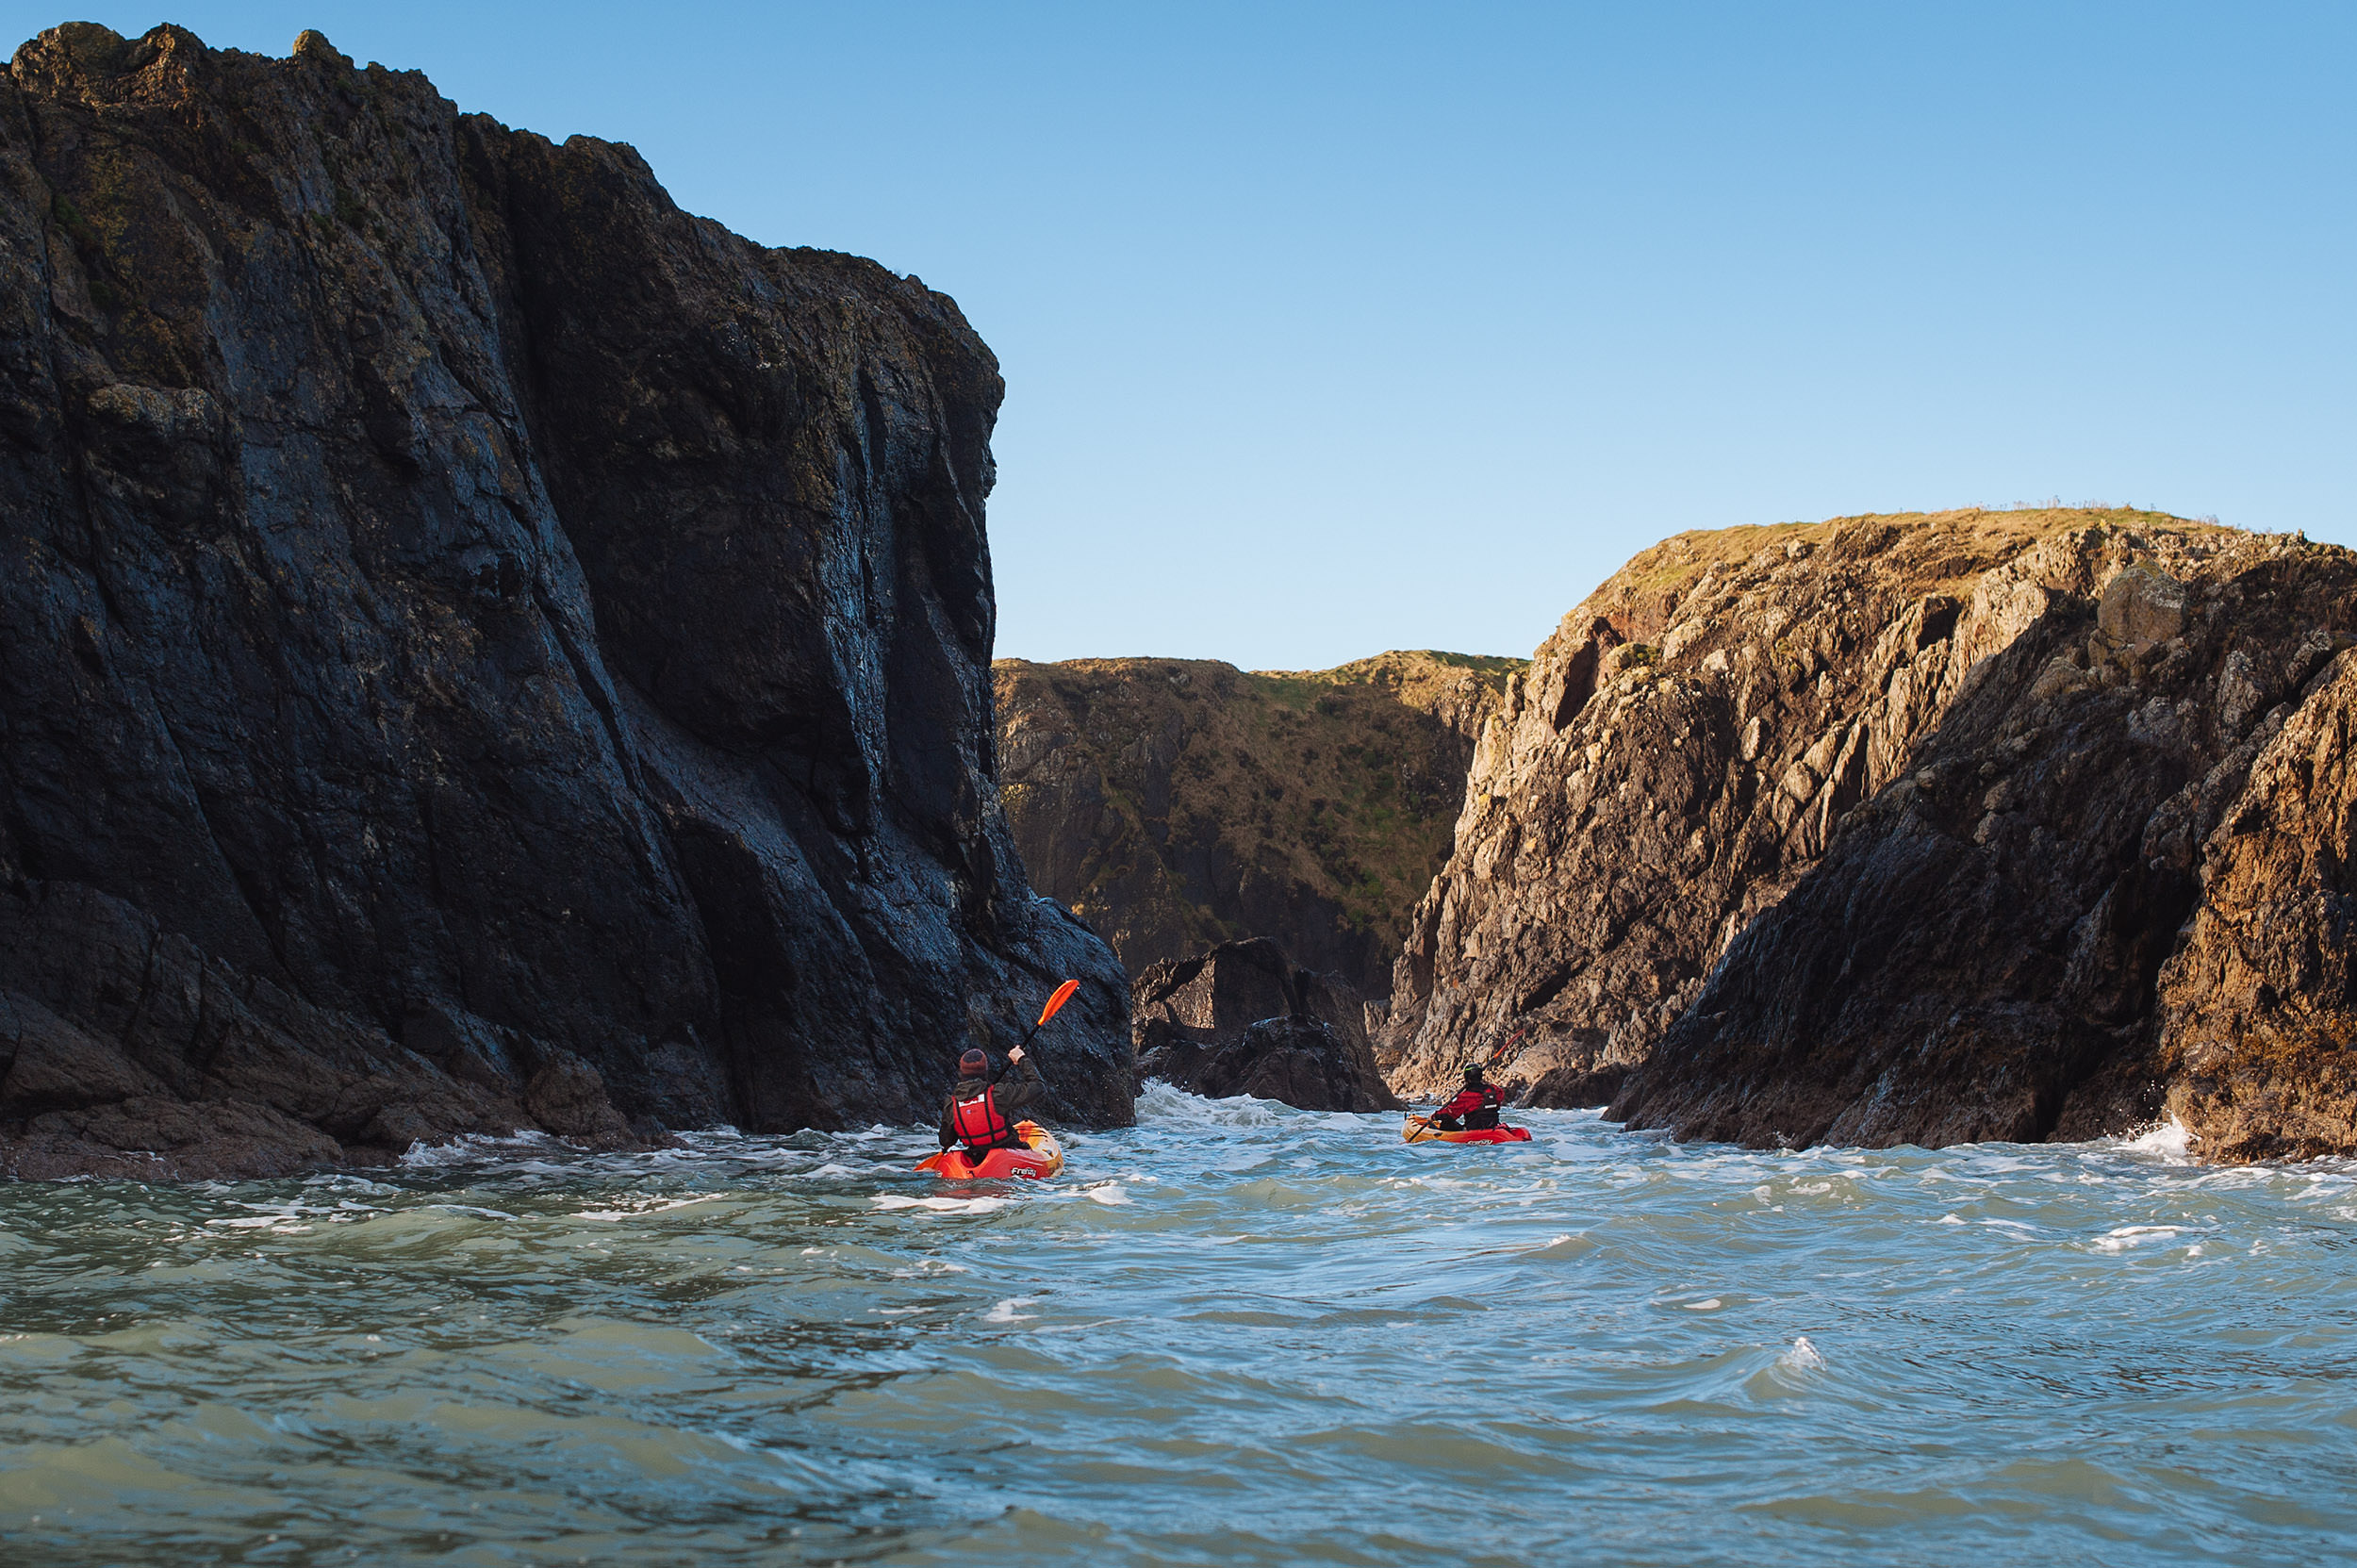 09-outdoor-seak-kayaking-kayak-adventure-ireland-hook-penninsula.jpg